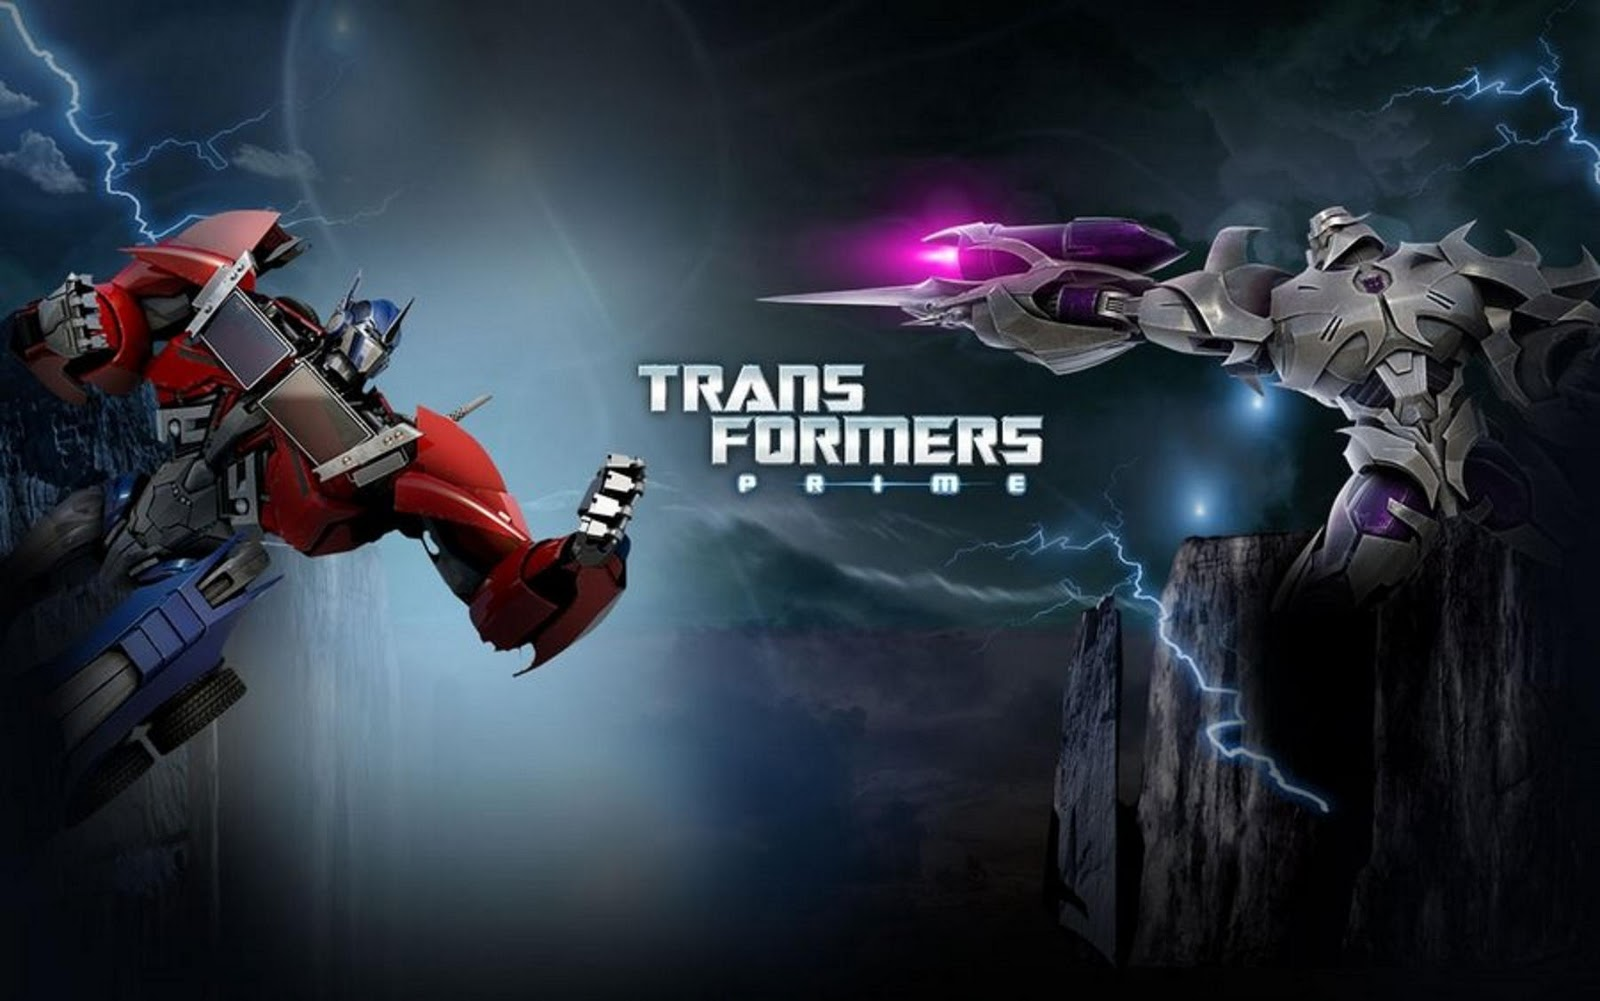 TRANSFORMERS MATRIX WALLPAPERS: Transformers Prime HD